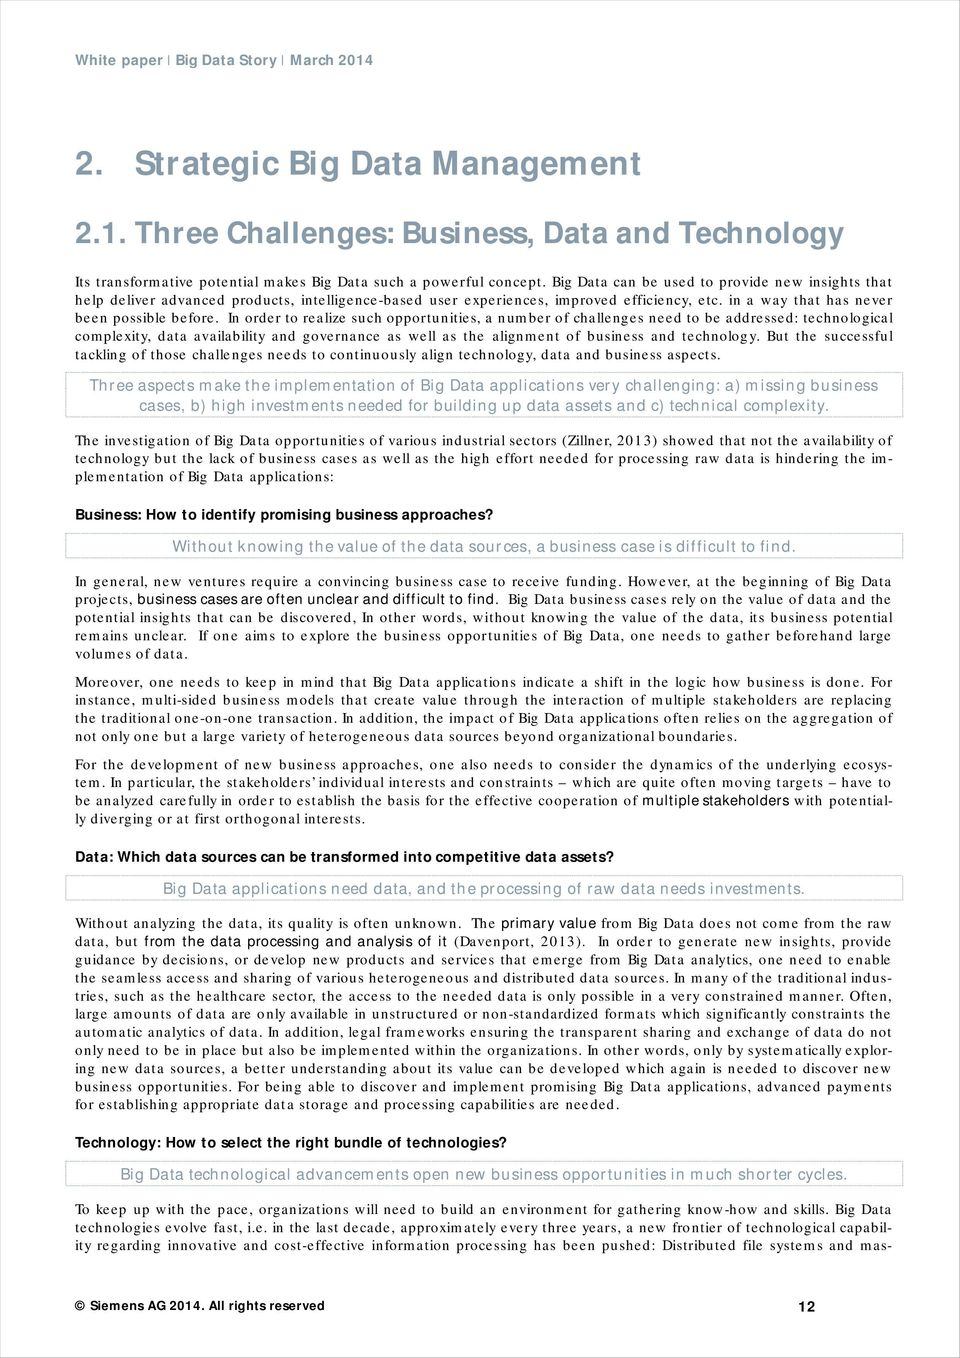 In order to realize such opportunities, a number of challenges need to be addressed: technological complexity, data availability and governance as well as the alignment of business and technology.